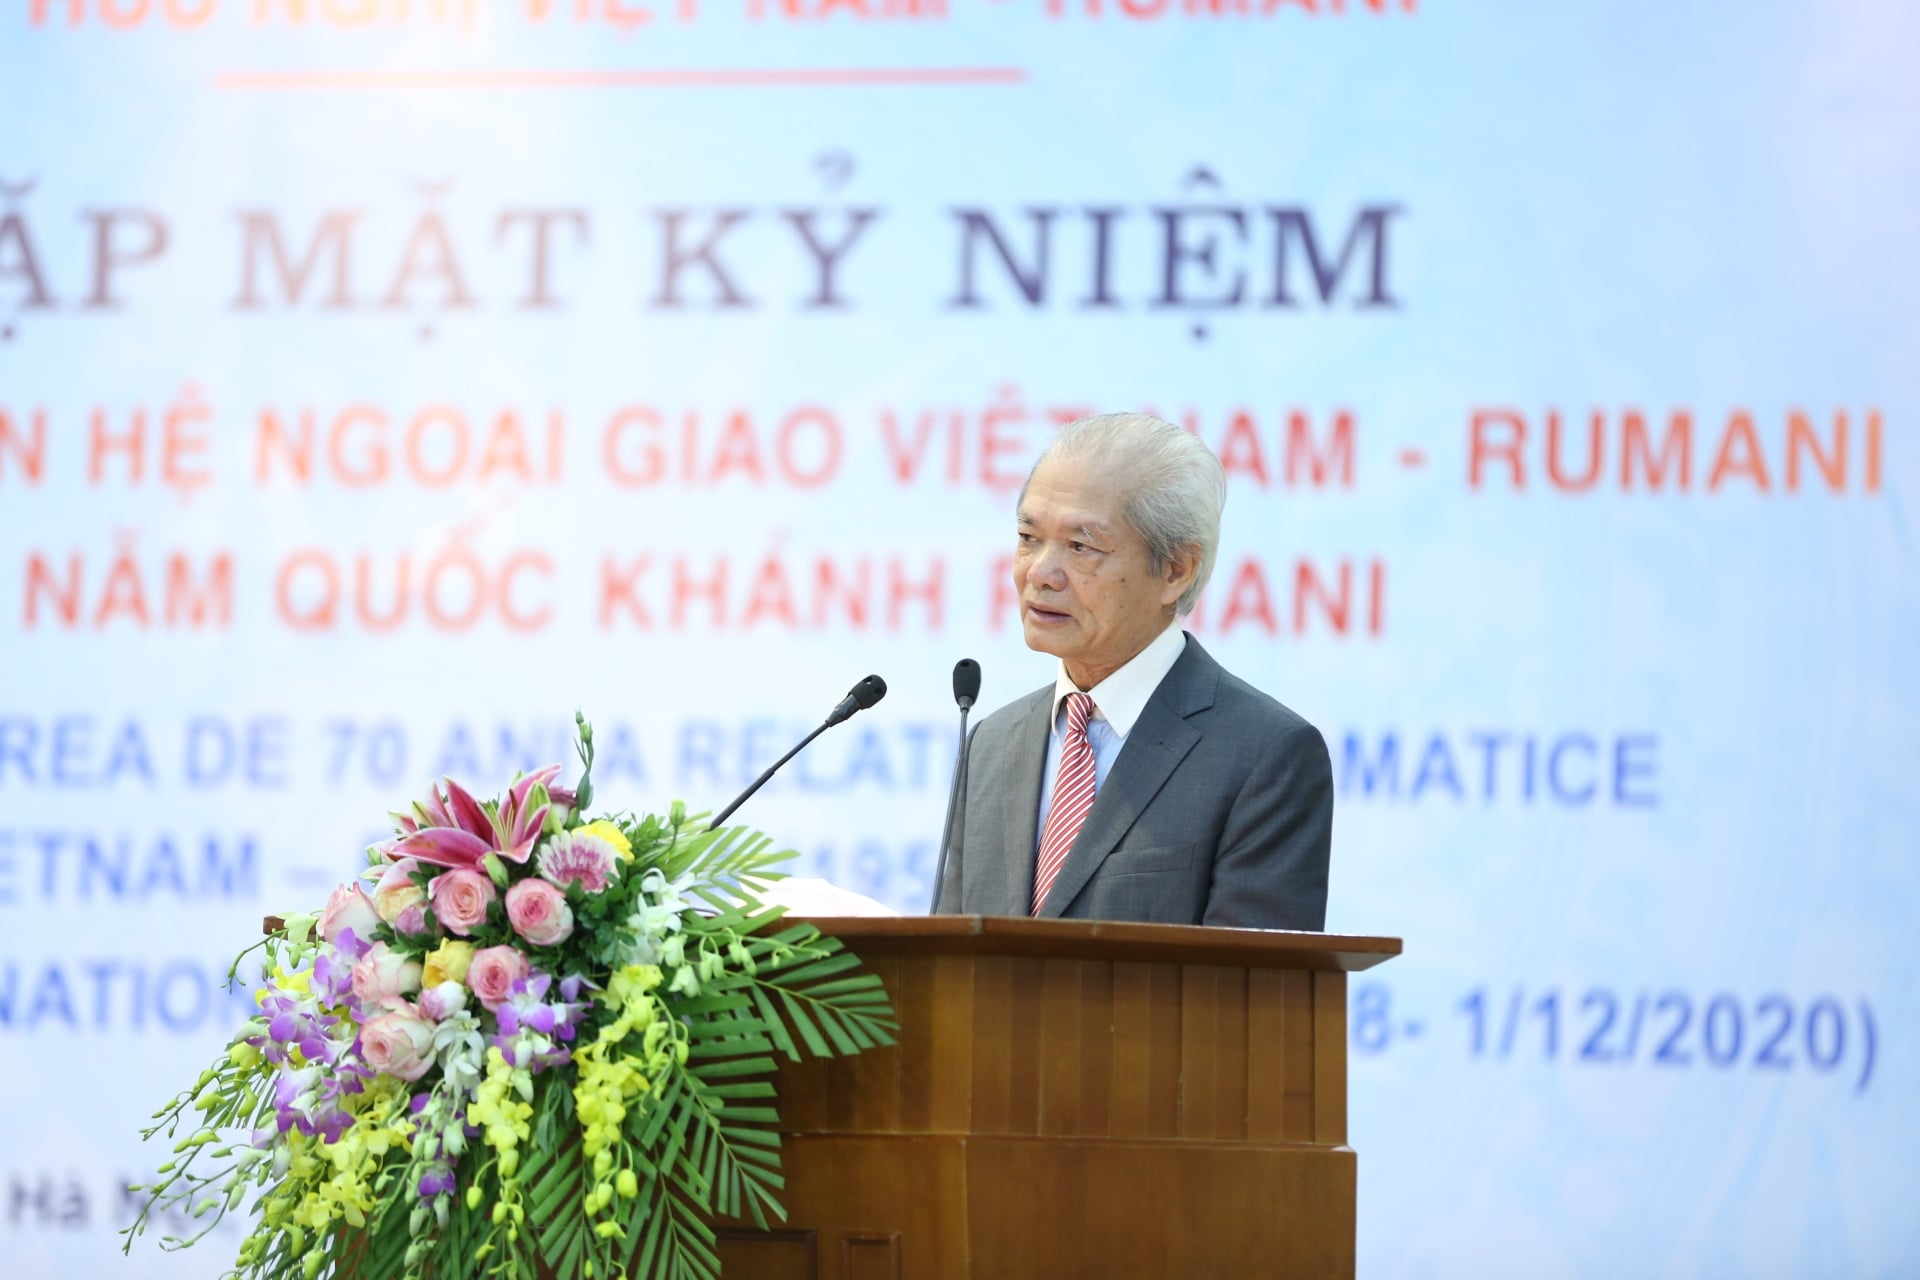 102nd national day (great union) of romania marked in hanoi